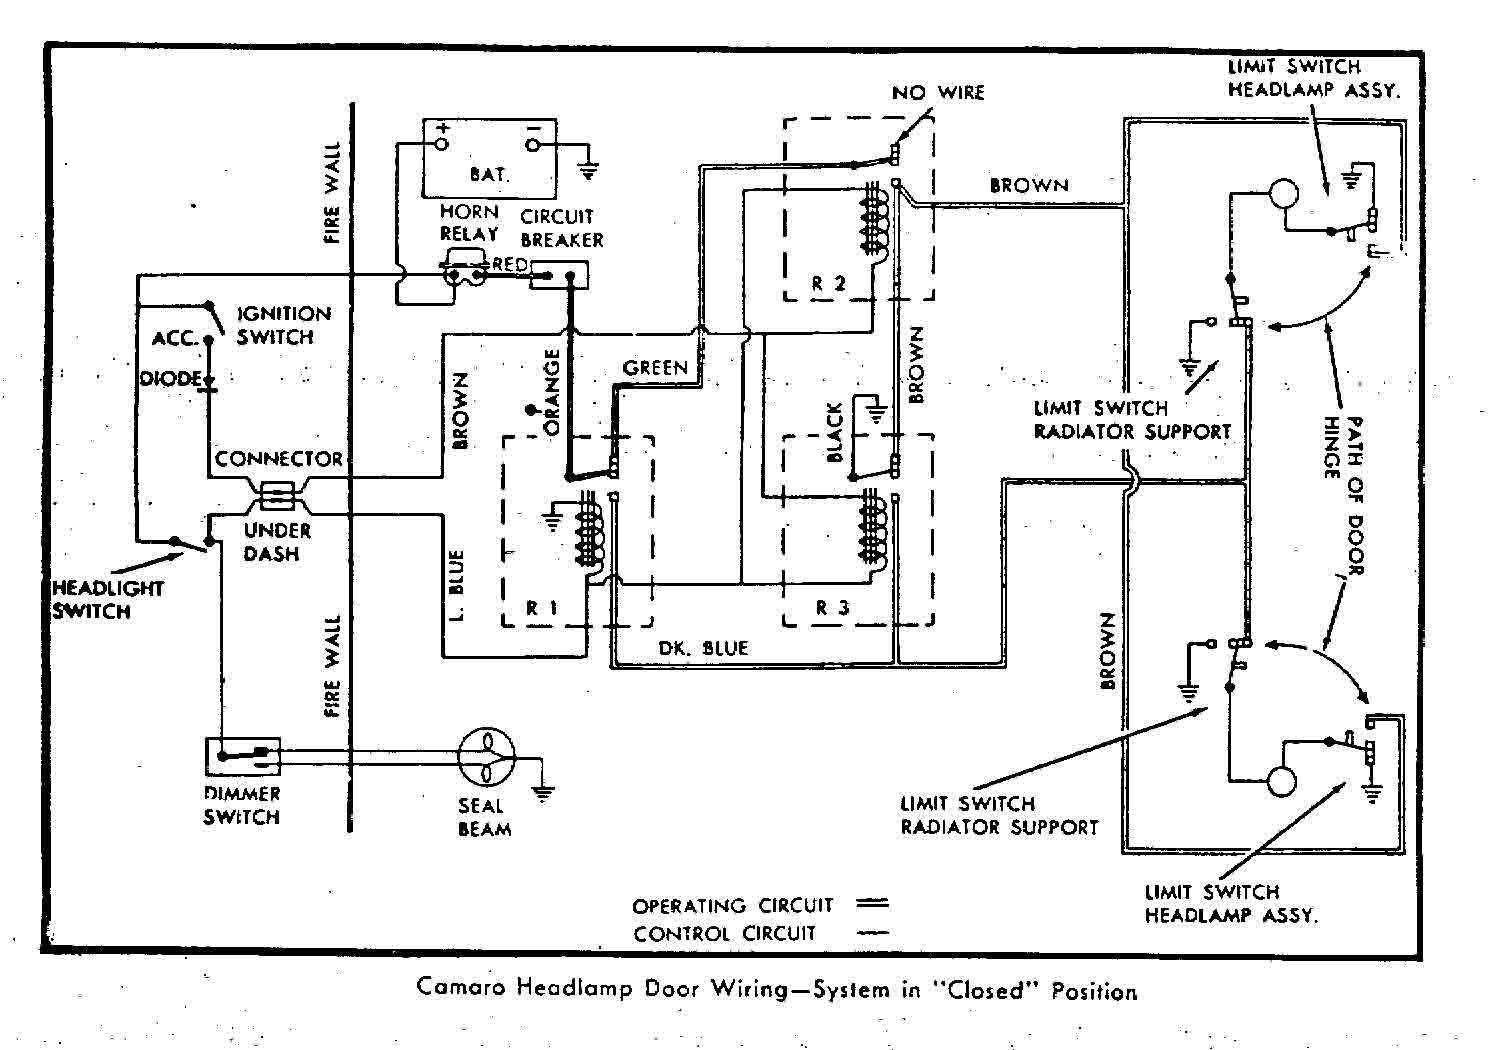 1969 Firebird Fuse Box Diagram Wiring Diagram Balance A Balance A Musikami It